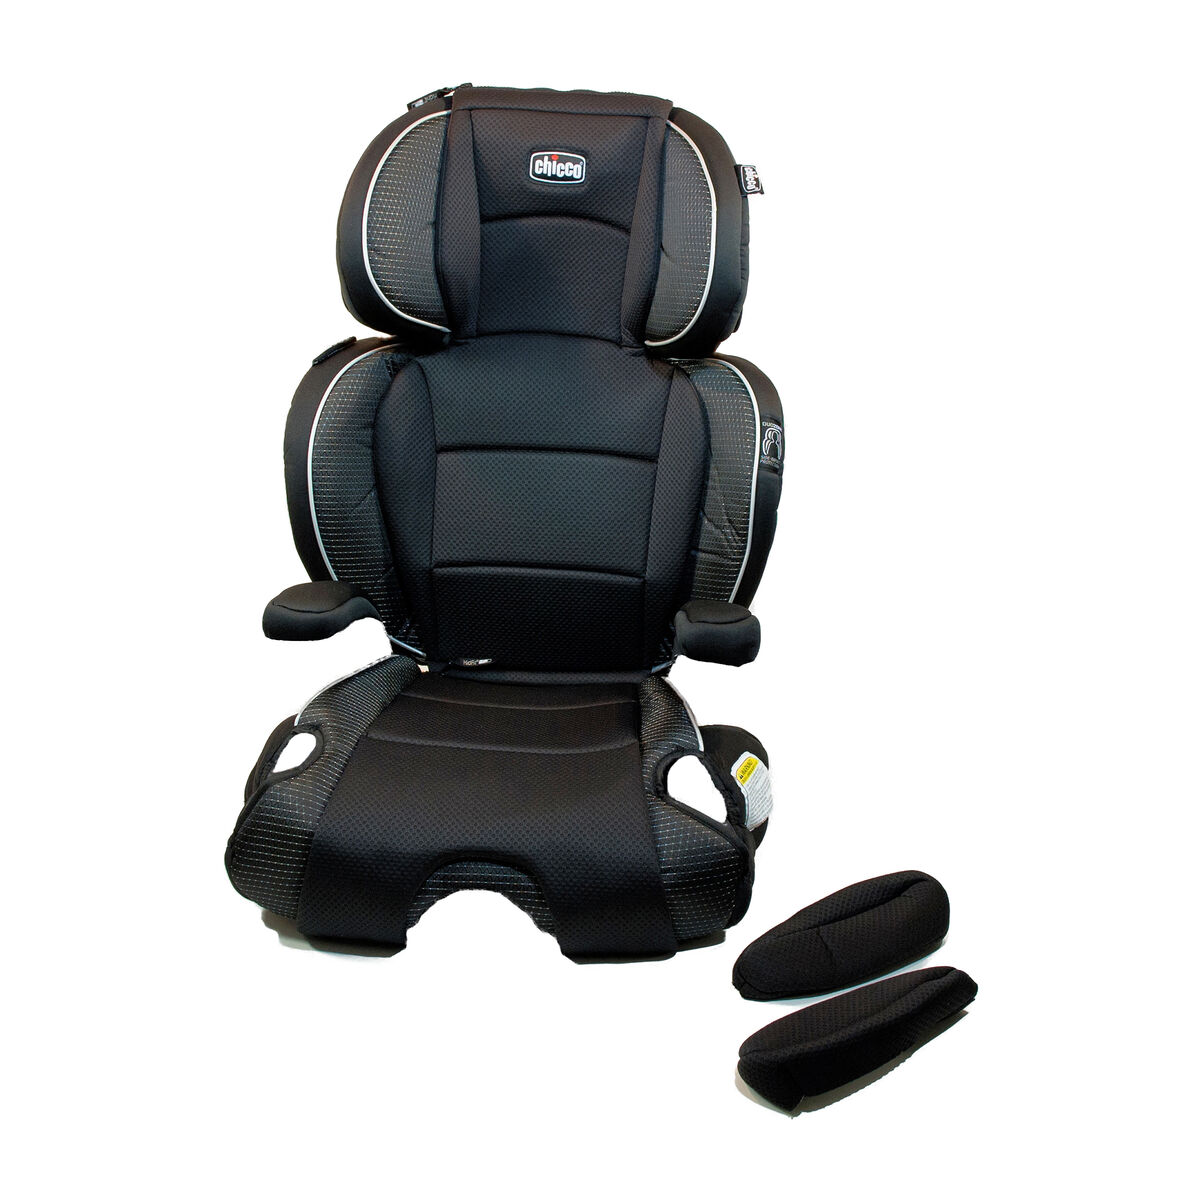 chicco kidfit zip seat cover insert and armrests. Black Bedroom Furniture Sets. Home Design Ideas